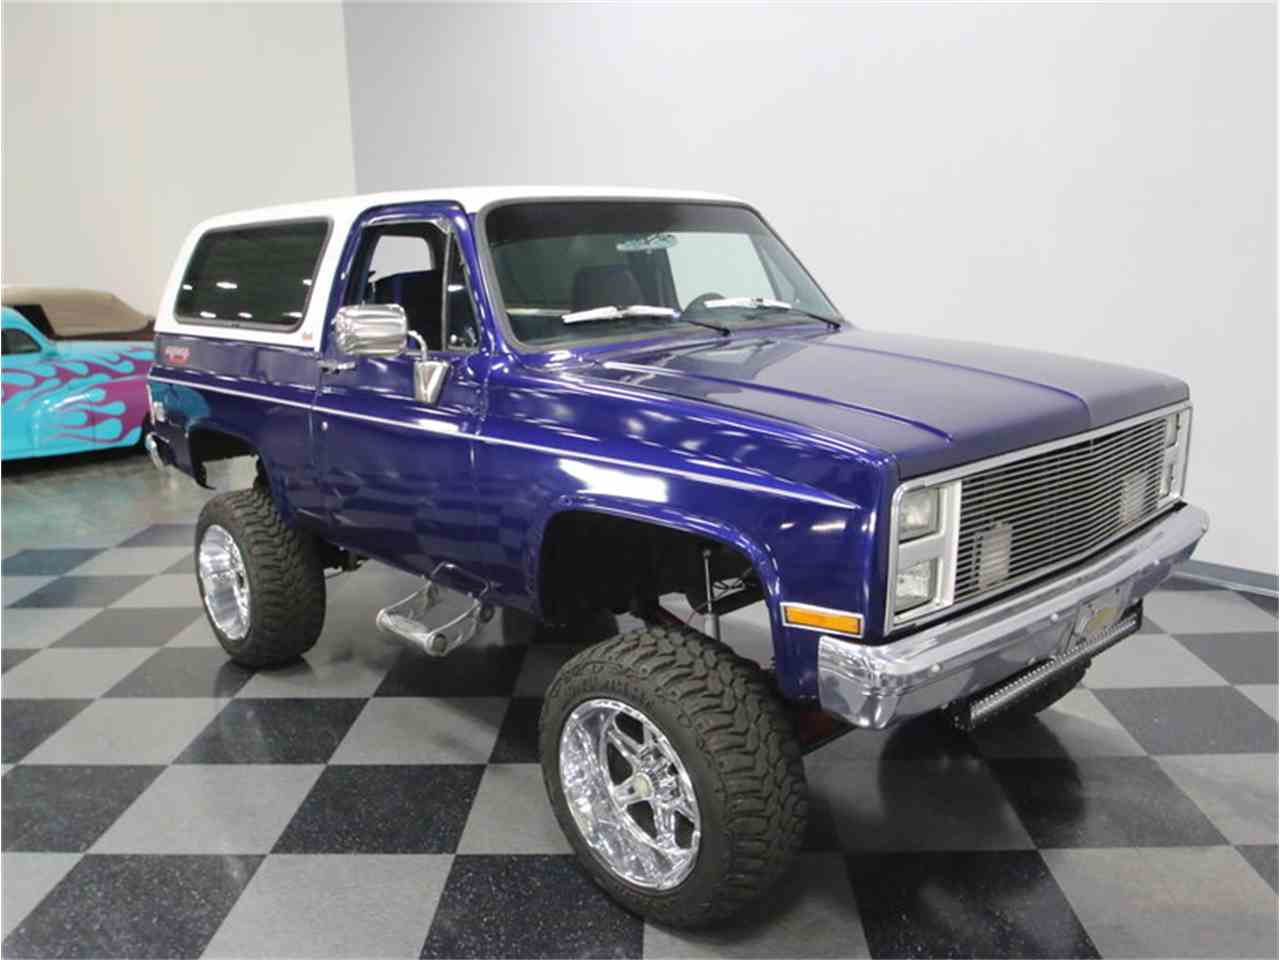 Large Picture of '86 Chevrolet Blazer located in Lavergne Tennessee - $15,995.00 - MZFQ